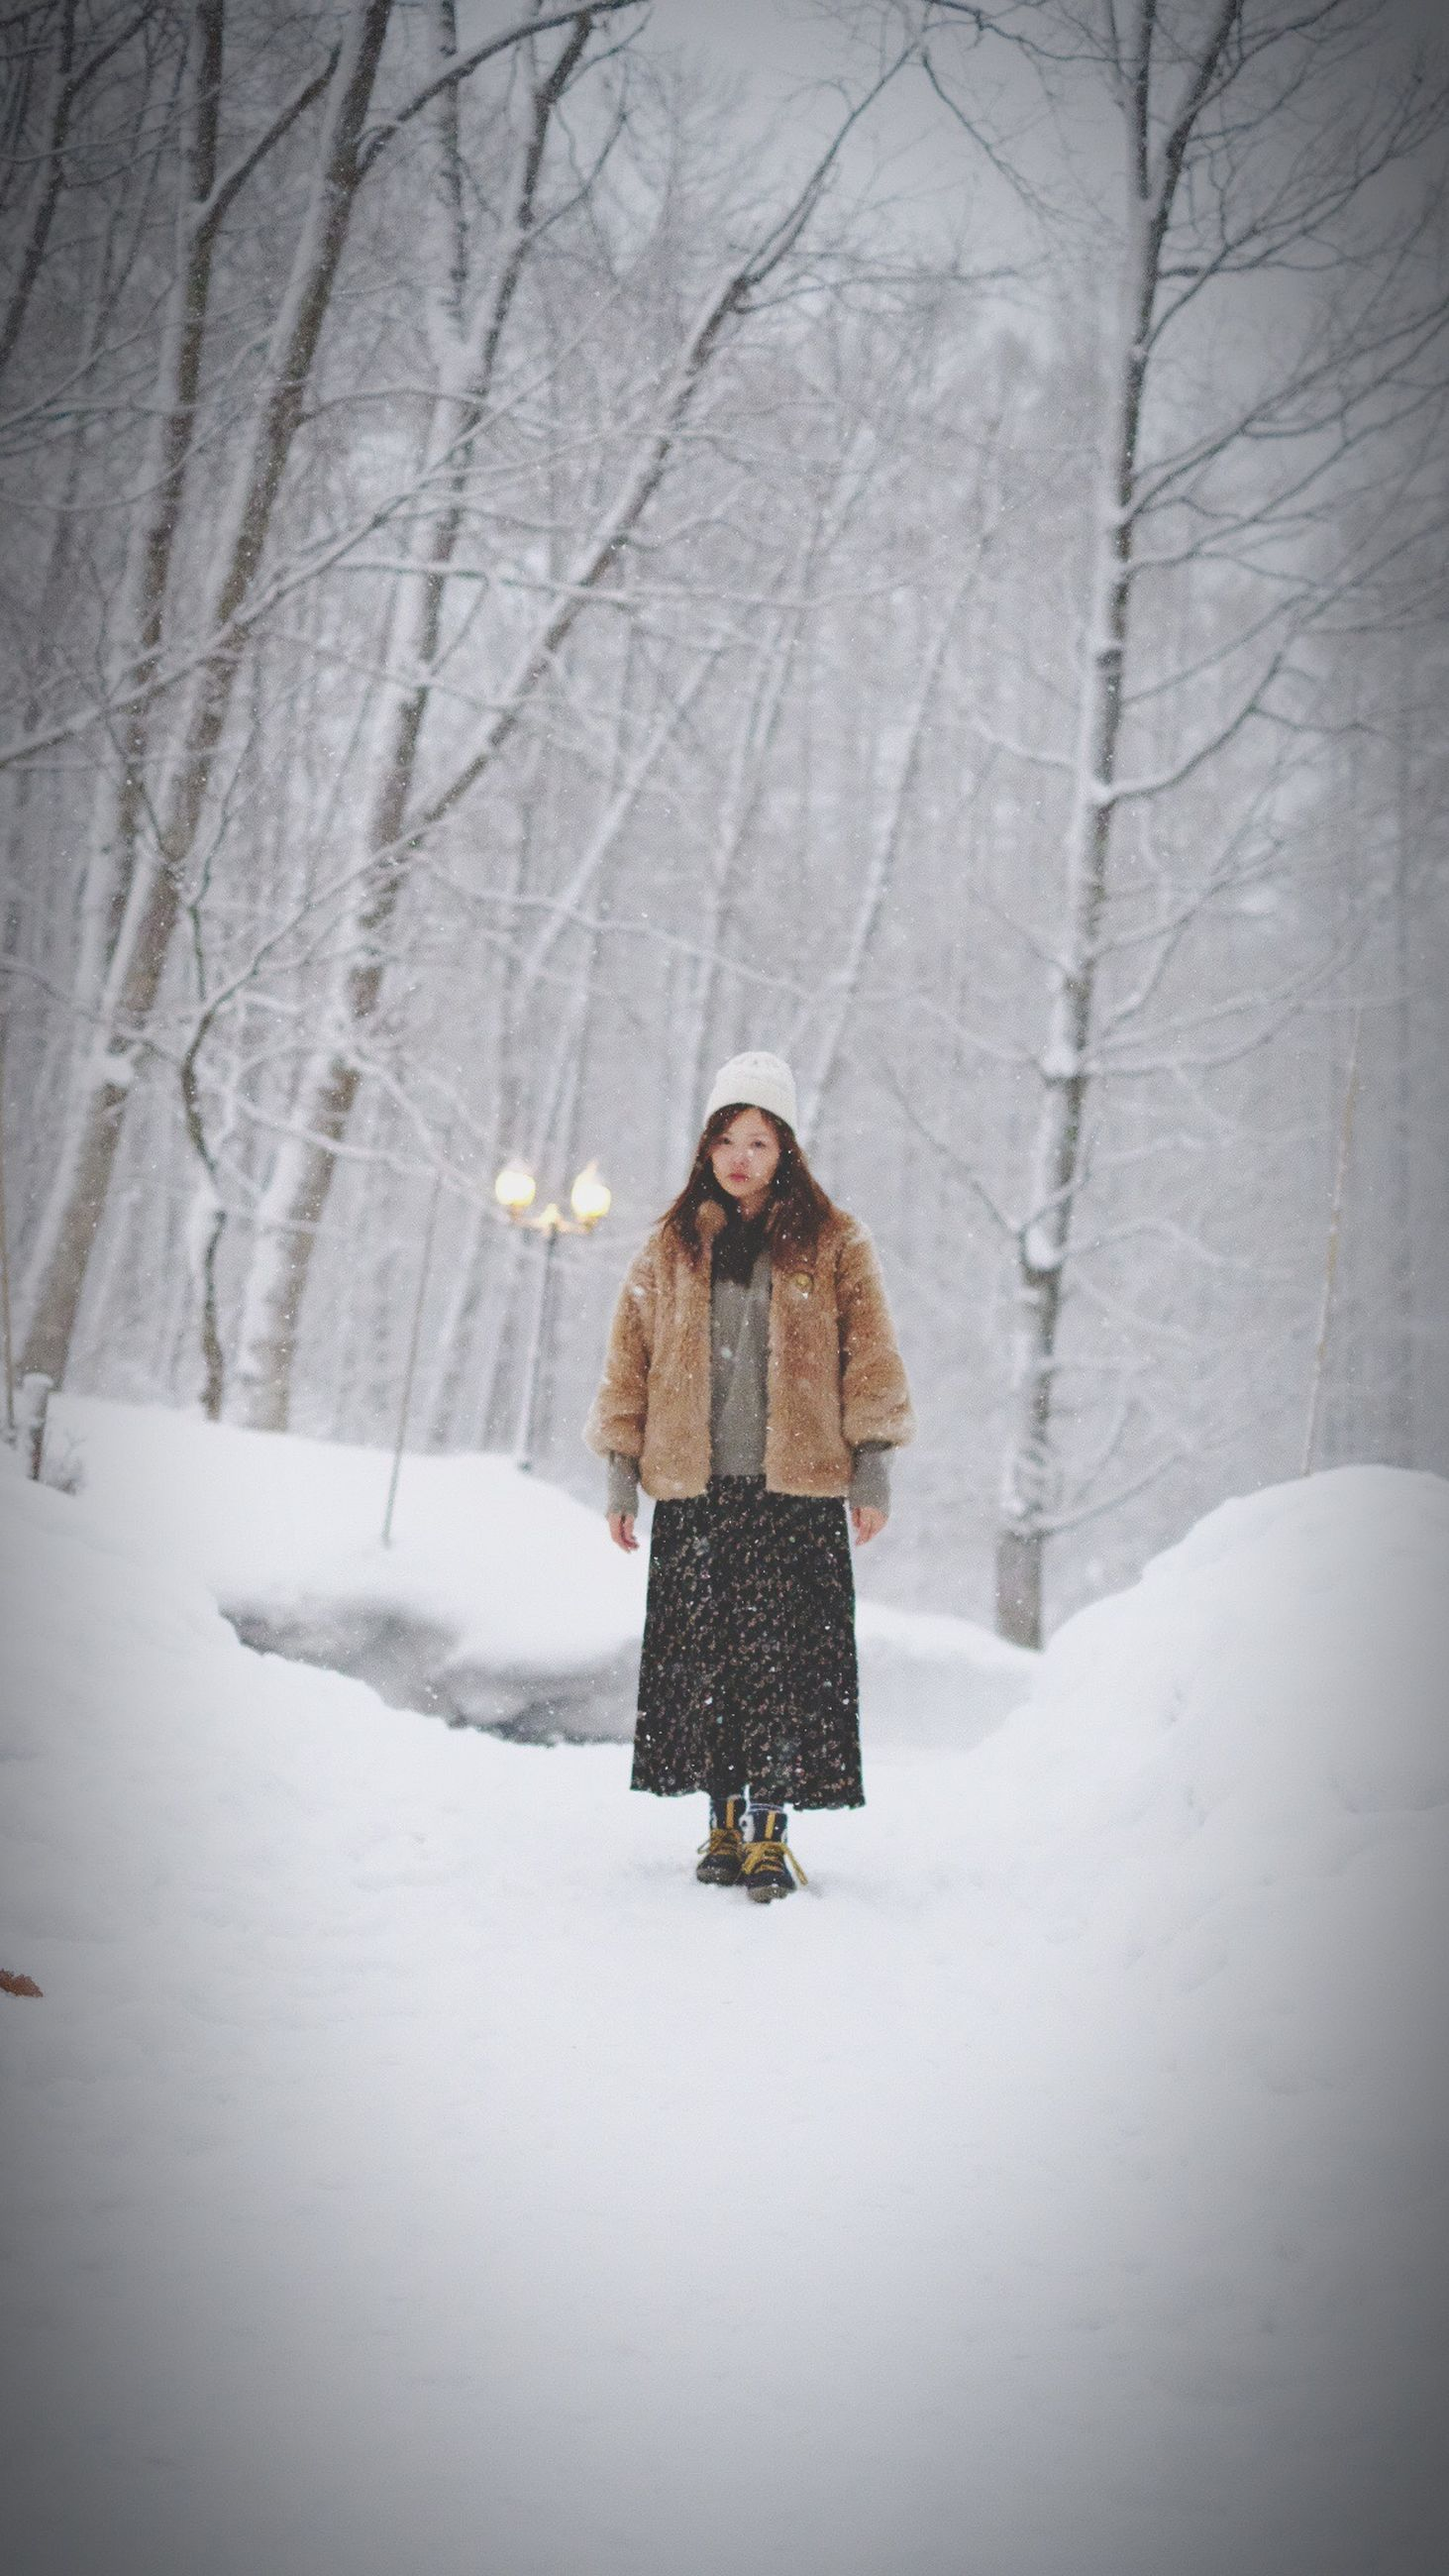 winter, cold temperature, snow, one person, warm clothing, women, portrait, nature, young adult, one woman only, only women, young women, forest, adult, adults only, tree, people, standing, one young woman only, beautiful woman, cardigan sweater, scarf, beauty, smiling, females, outdoors, beauty in nature, mountain, day, human body part, desaturated